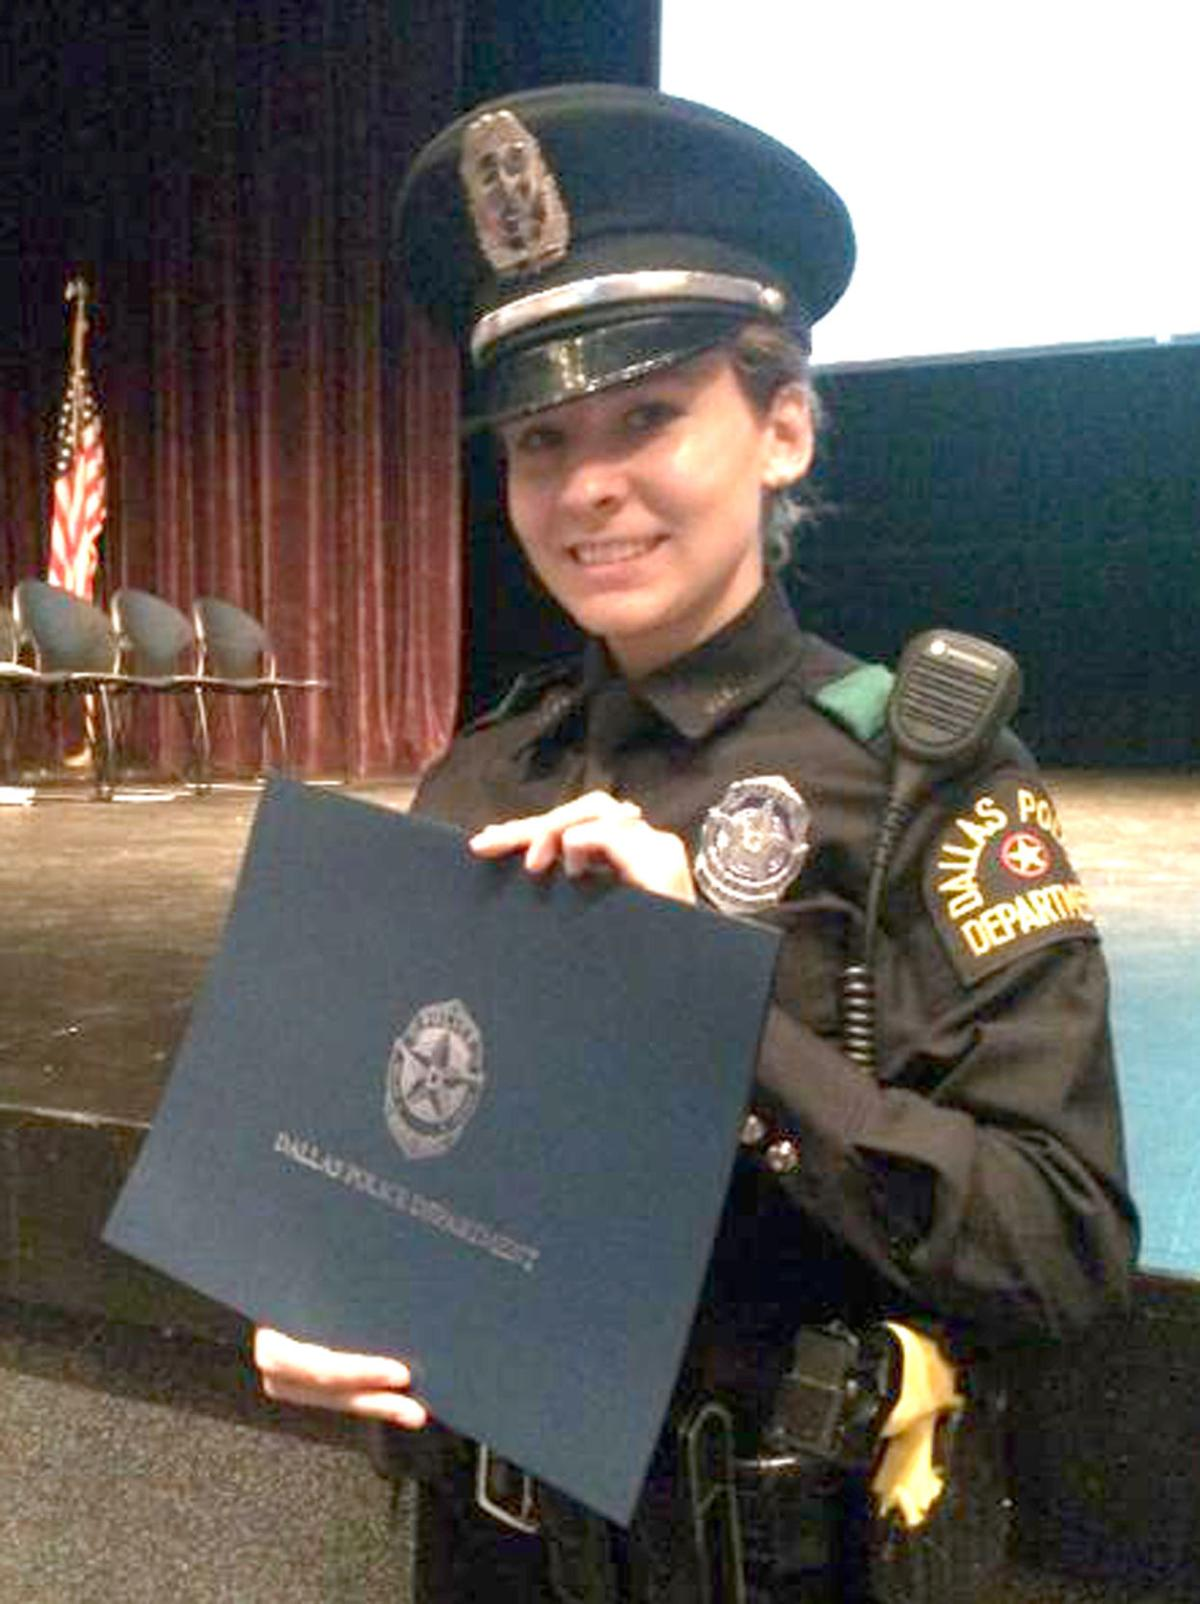 Beaver Dam woman a Dallas police officer who received minor